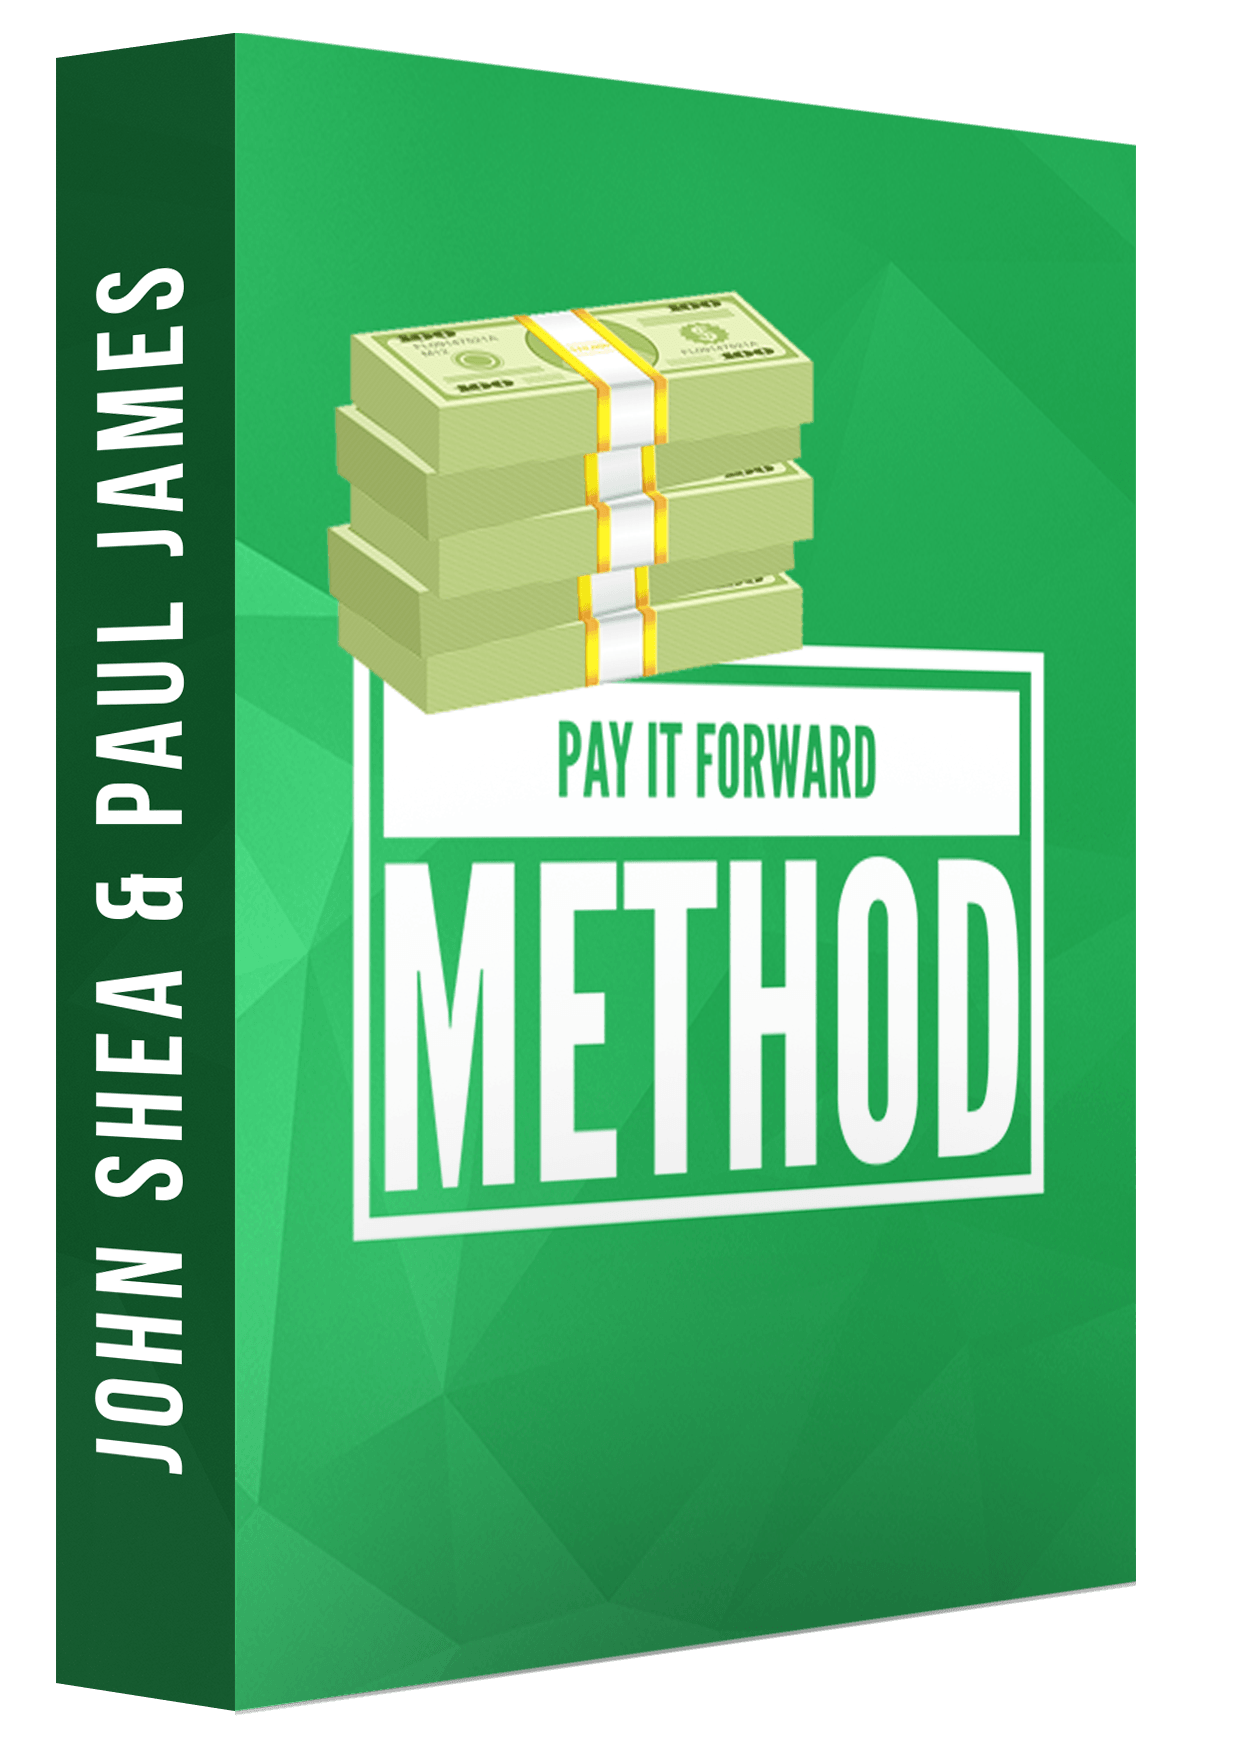 PAY IT FORWARD METHOD REVIEW